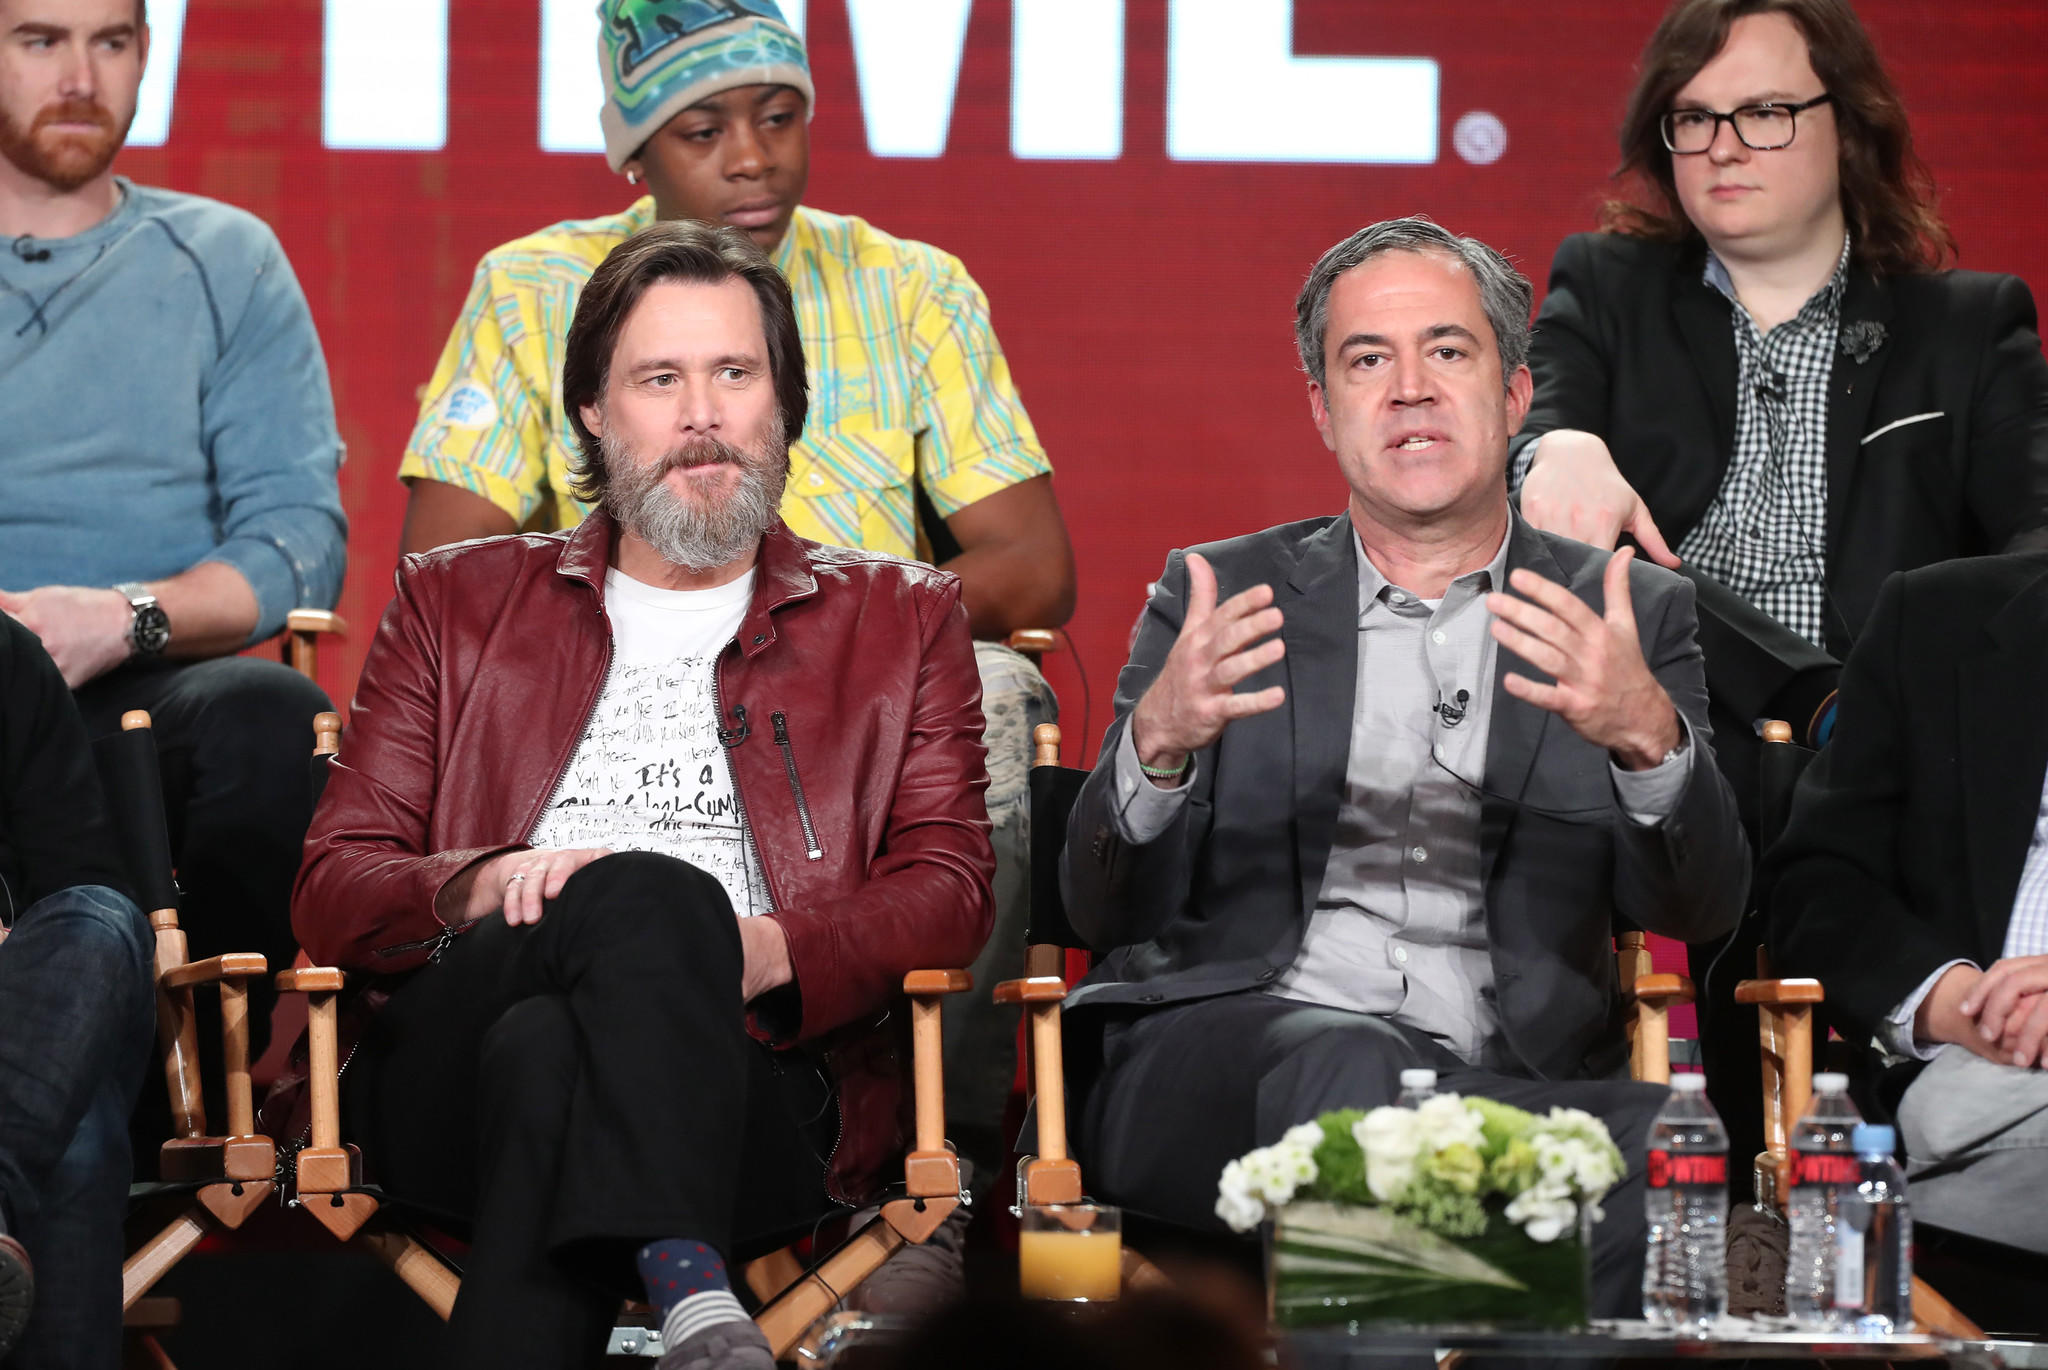 Actors Andrew Santino, RJ Cyler and Clark Duke, back row, with executive producers Jim Carrey and Michael Aguilar of Showtime's